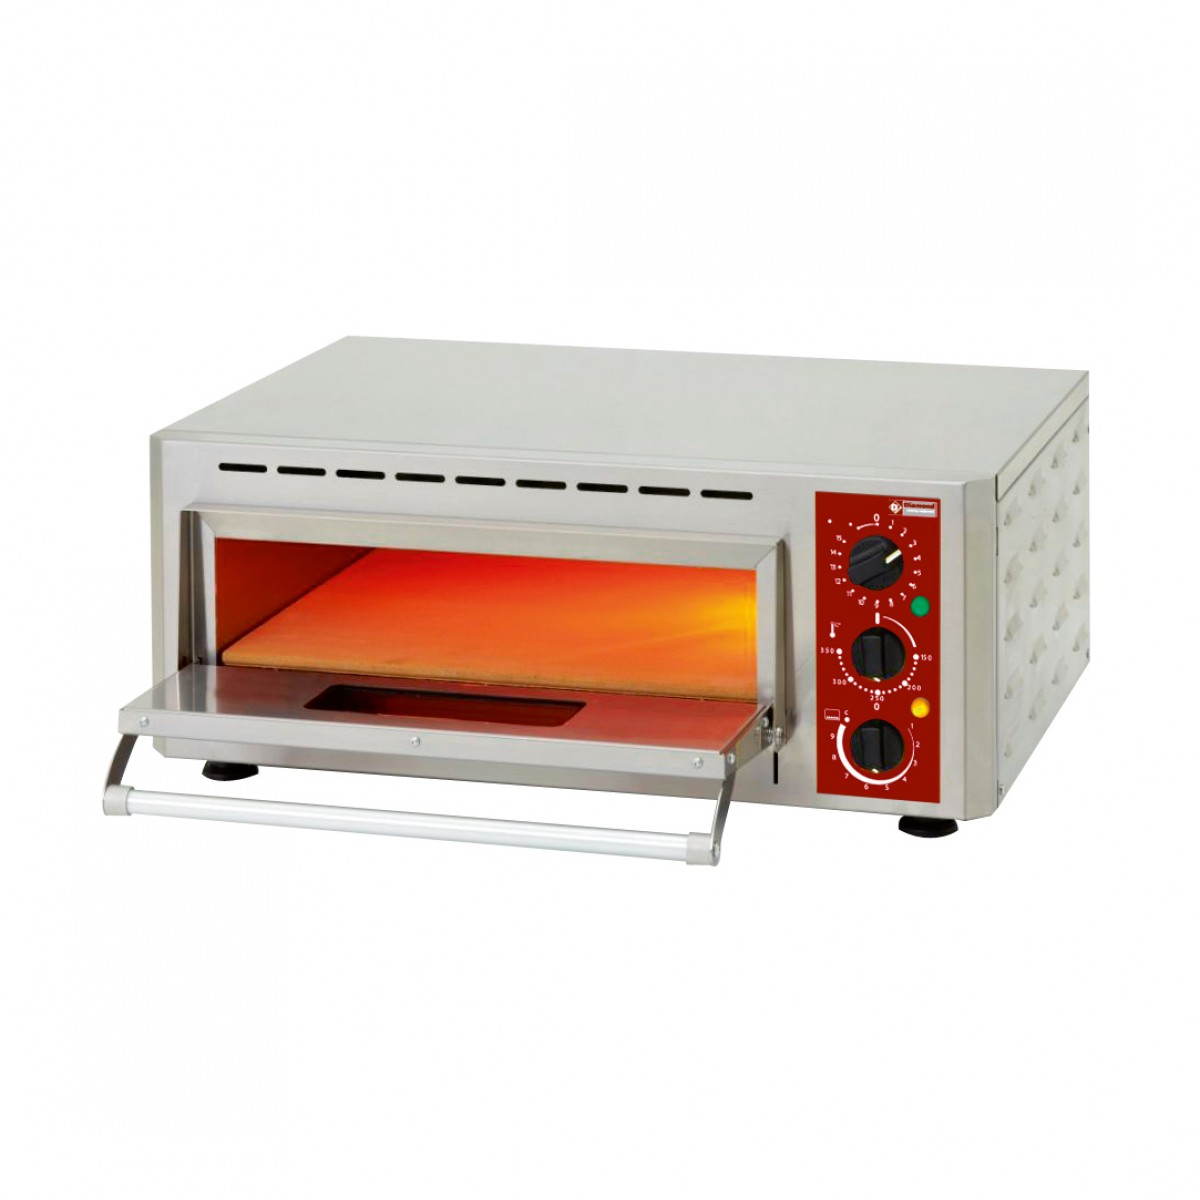 Countertop Pizza Ovens For Sale : ... & Fast Food / PIZZA-QUICK/43 Electric Infrared Modular Pizza Oven